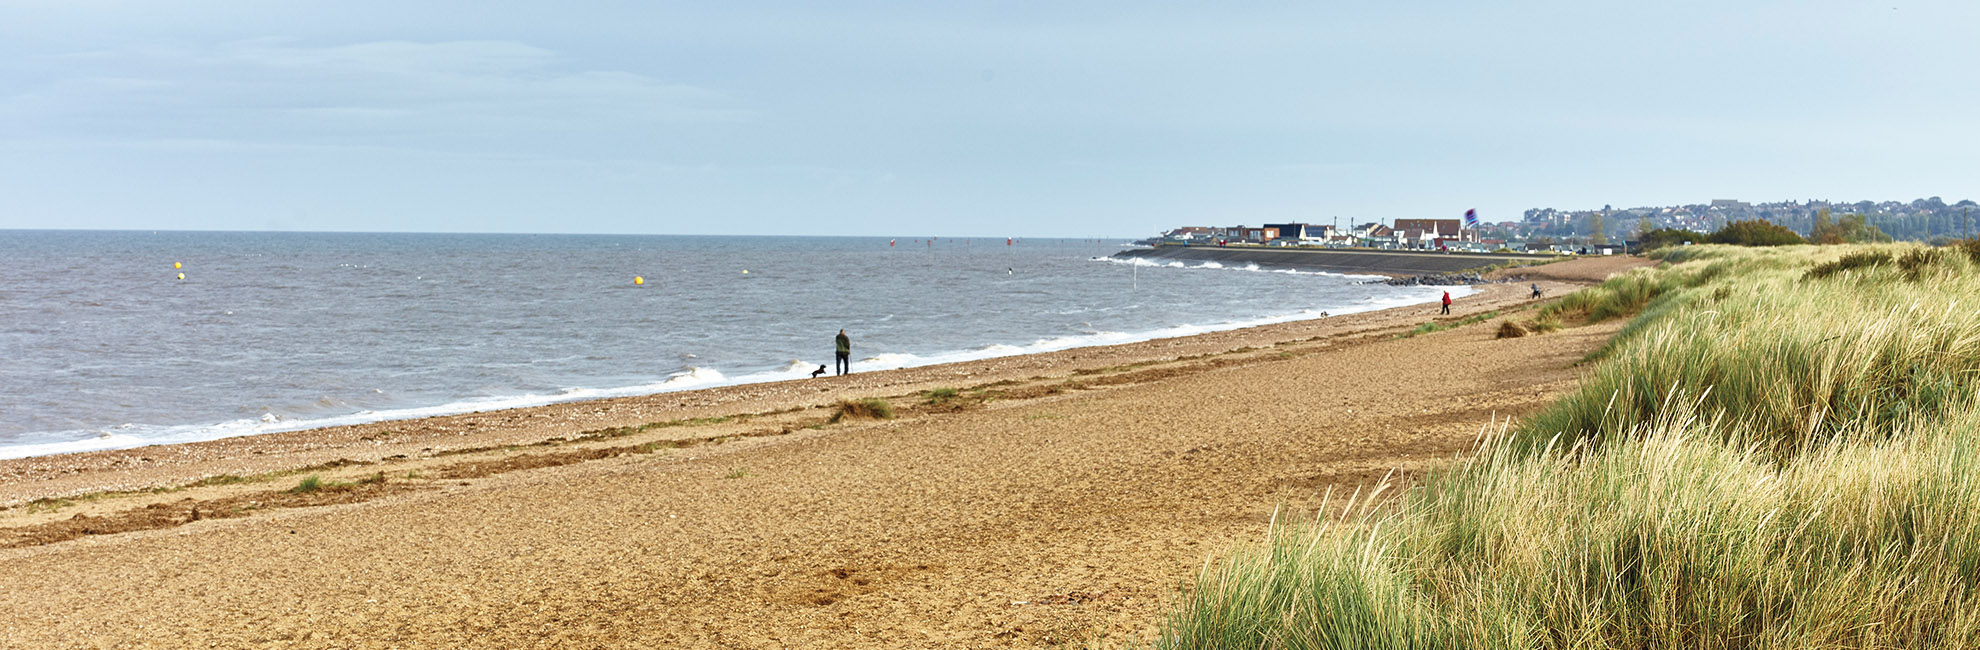 A man walking his dog on a shingle beach with grassy dunes